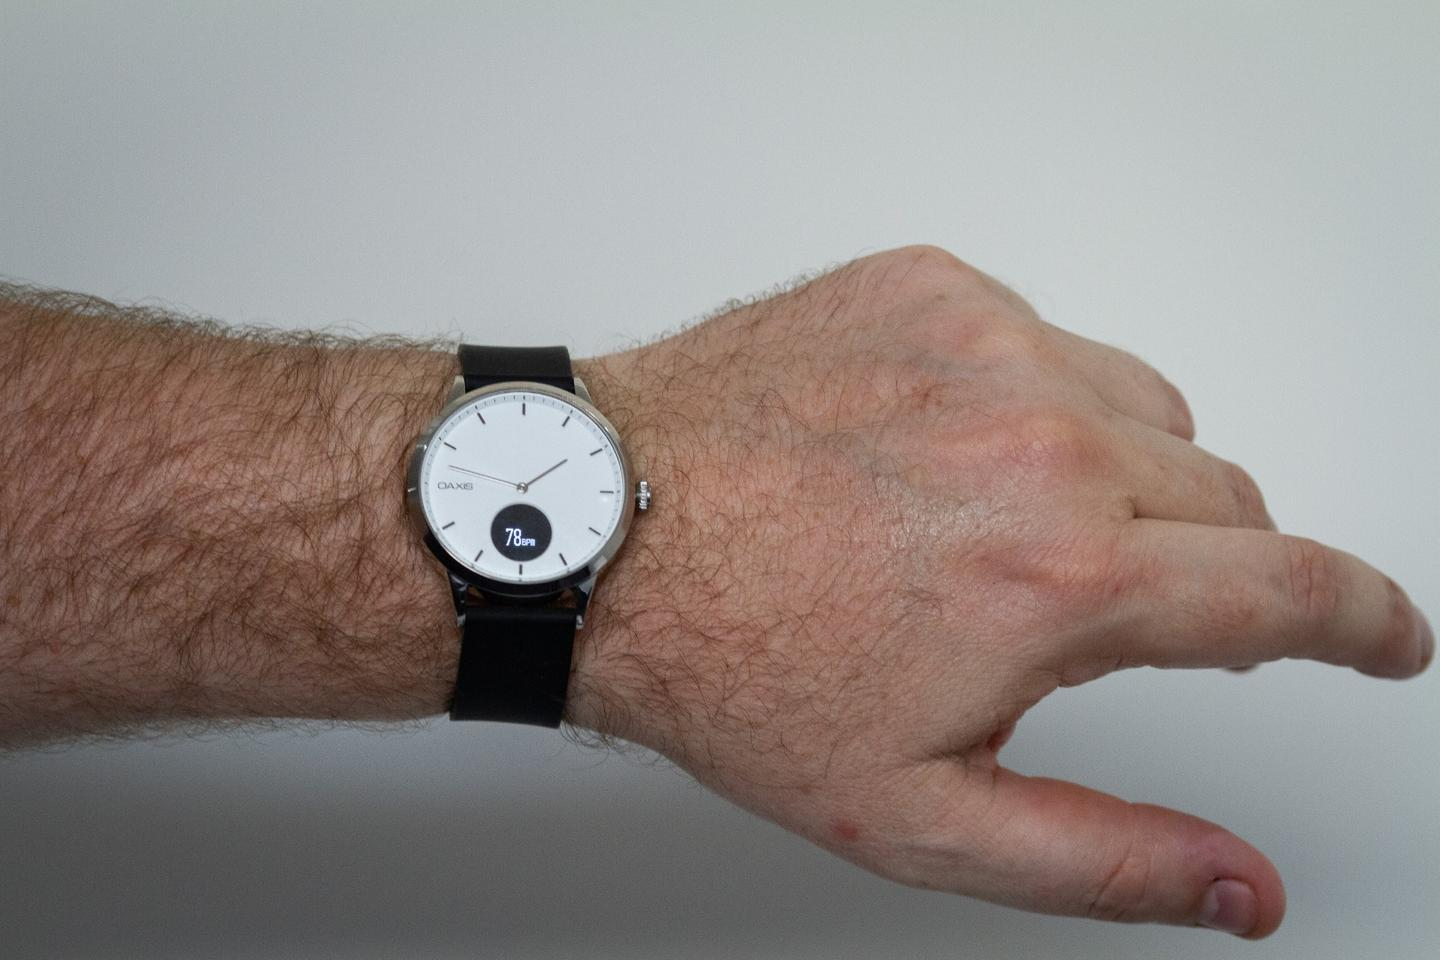 Oaxis Timepiece: a semi-smart analog watch with a heart rate monitor